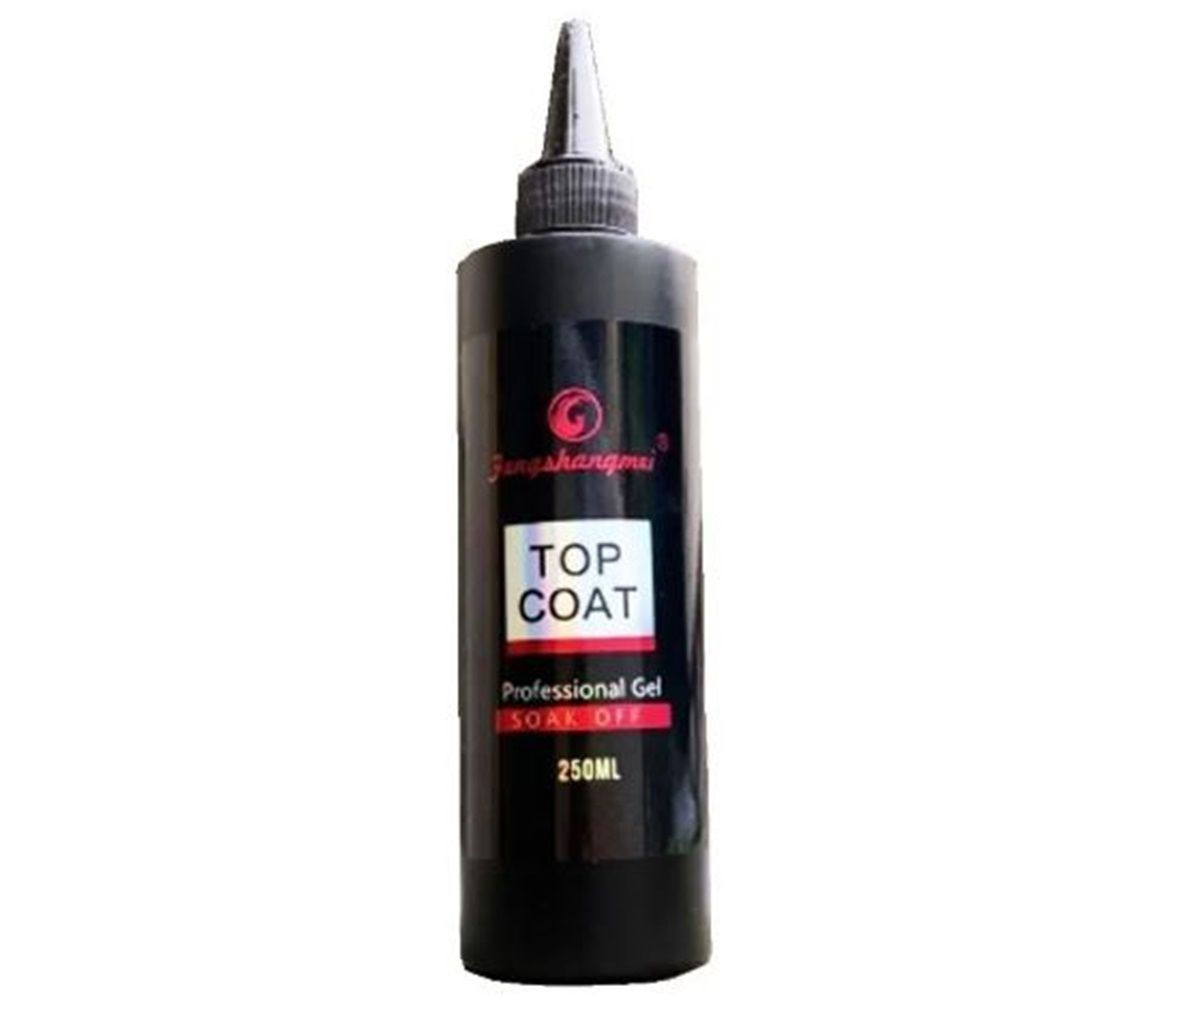 Top Coat Fengshangmei 250ml Gigante Pretinho Do Poder